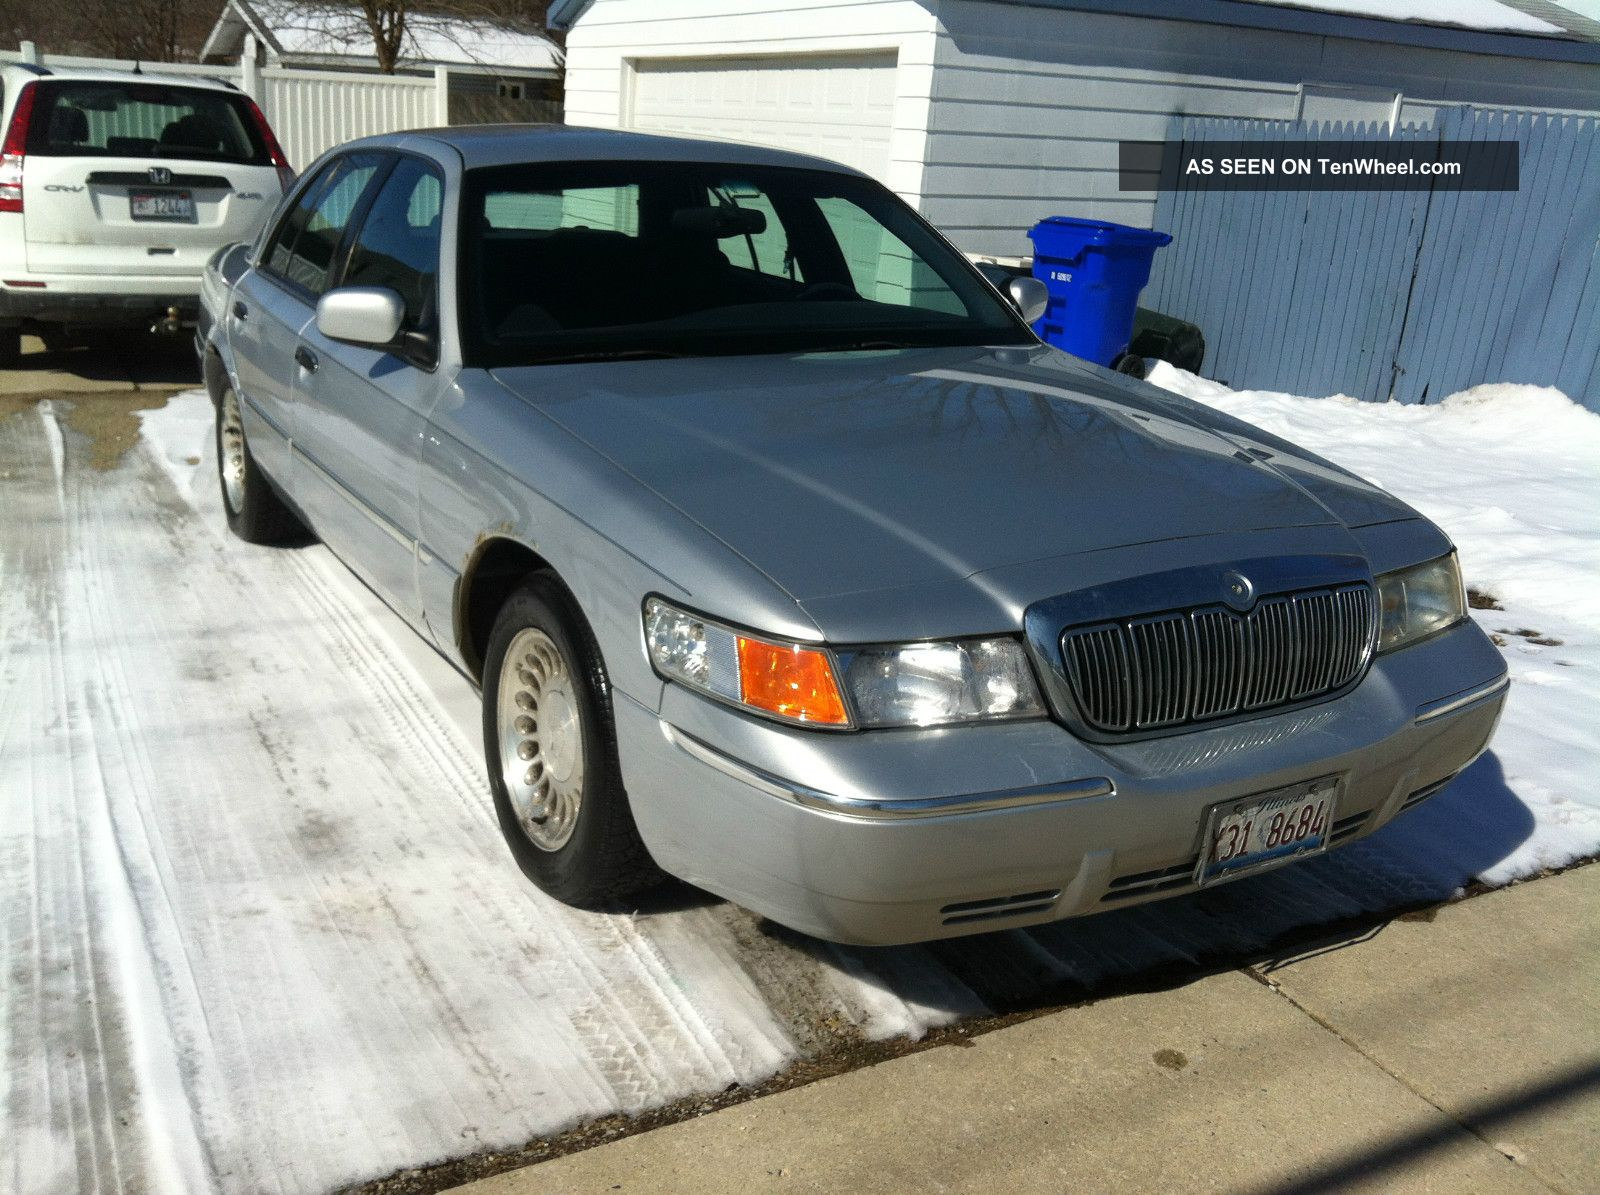 2000 Mercury Grand Marquis Ls Silver Great Runner,  Check Out Grand Marquis photo